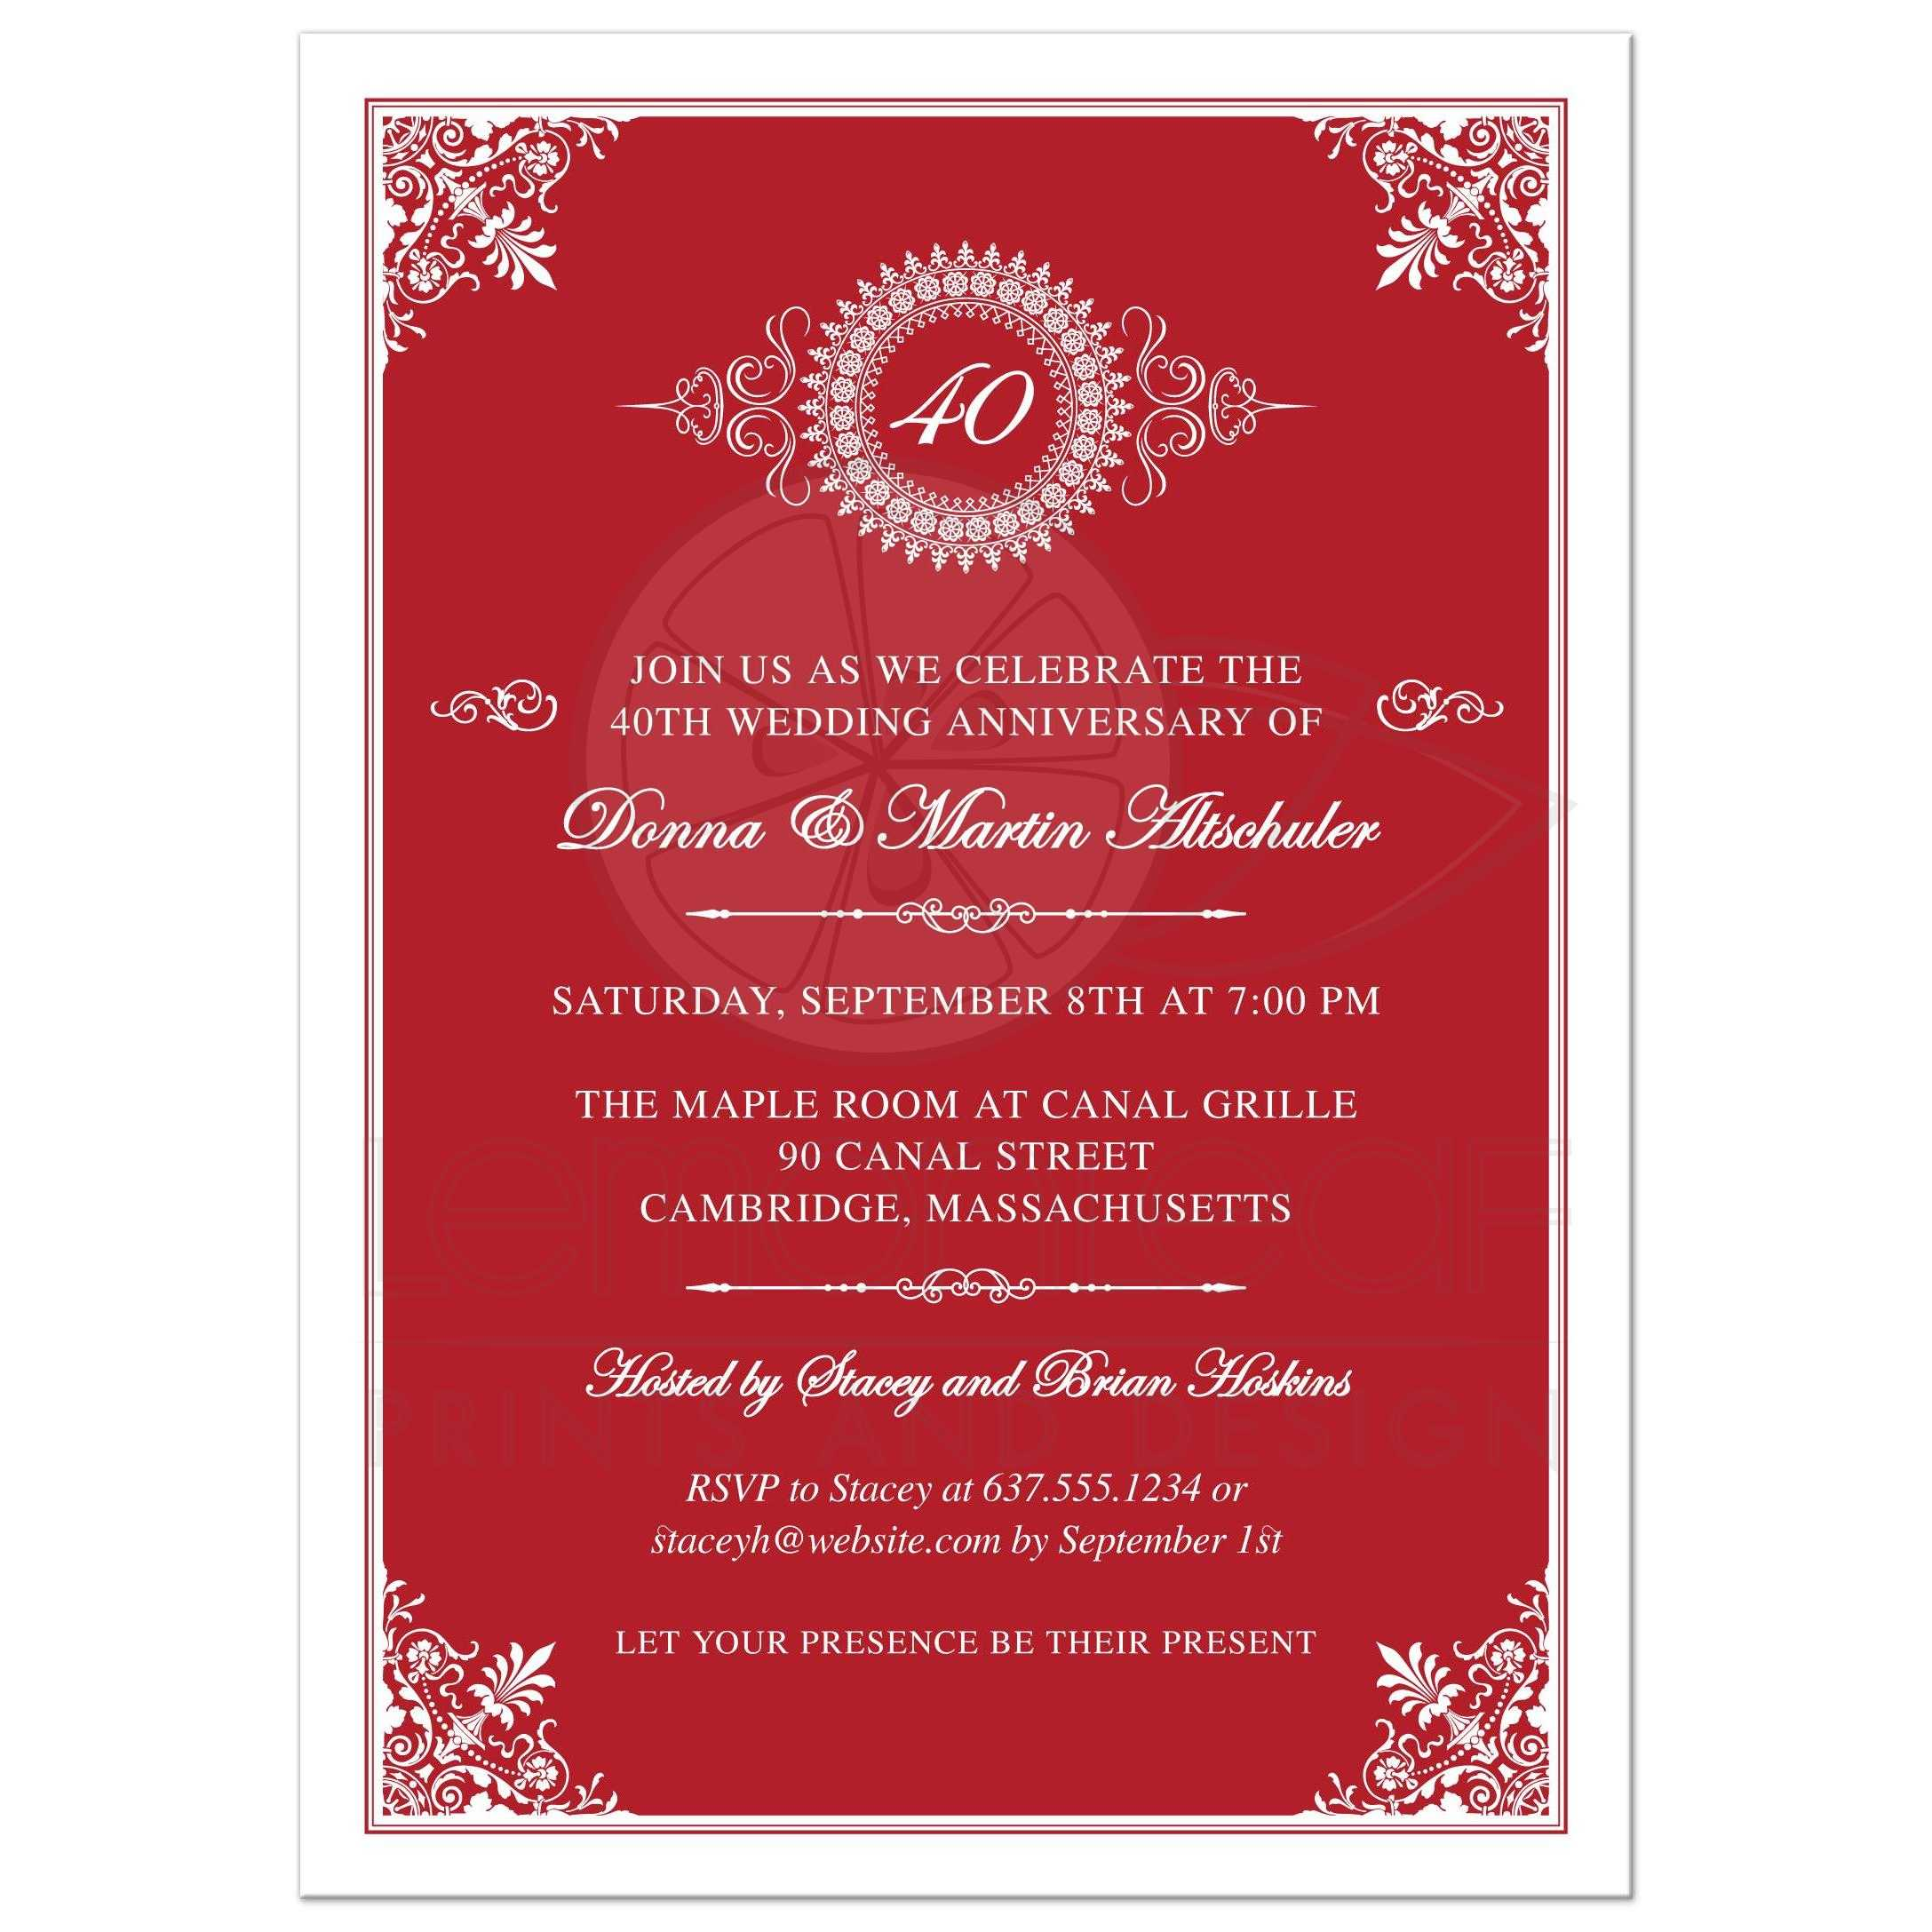 Wedding Anniversary Party Invitation - Red 40th Ornate Medallion